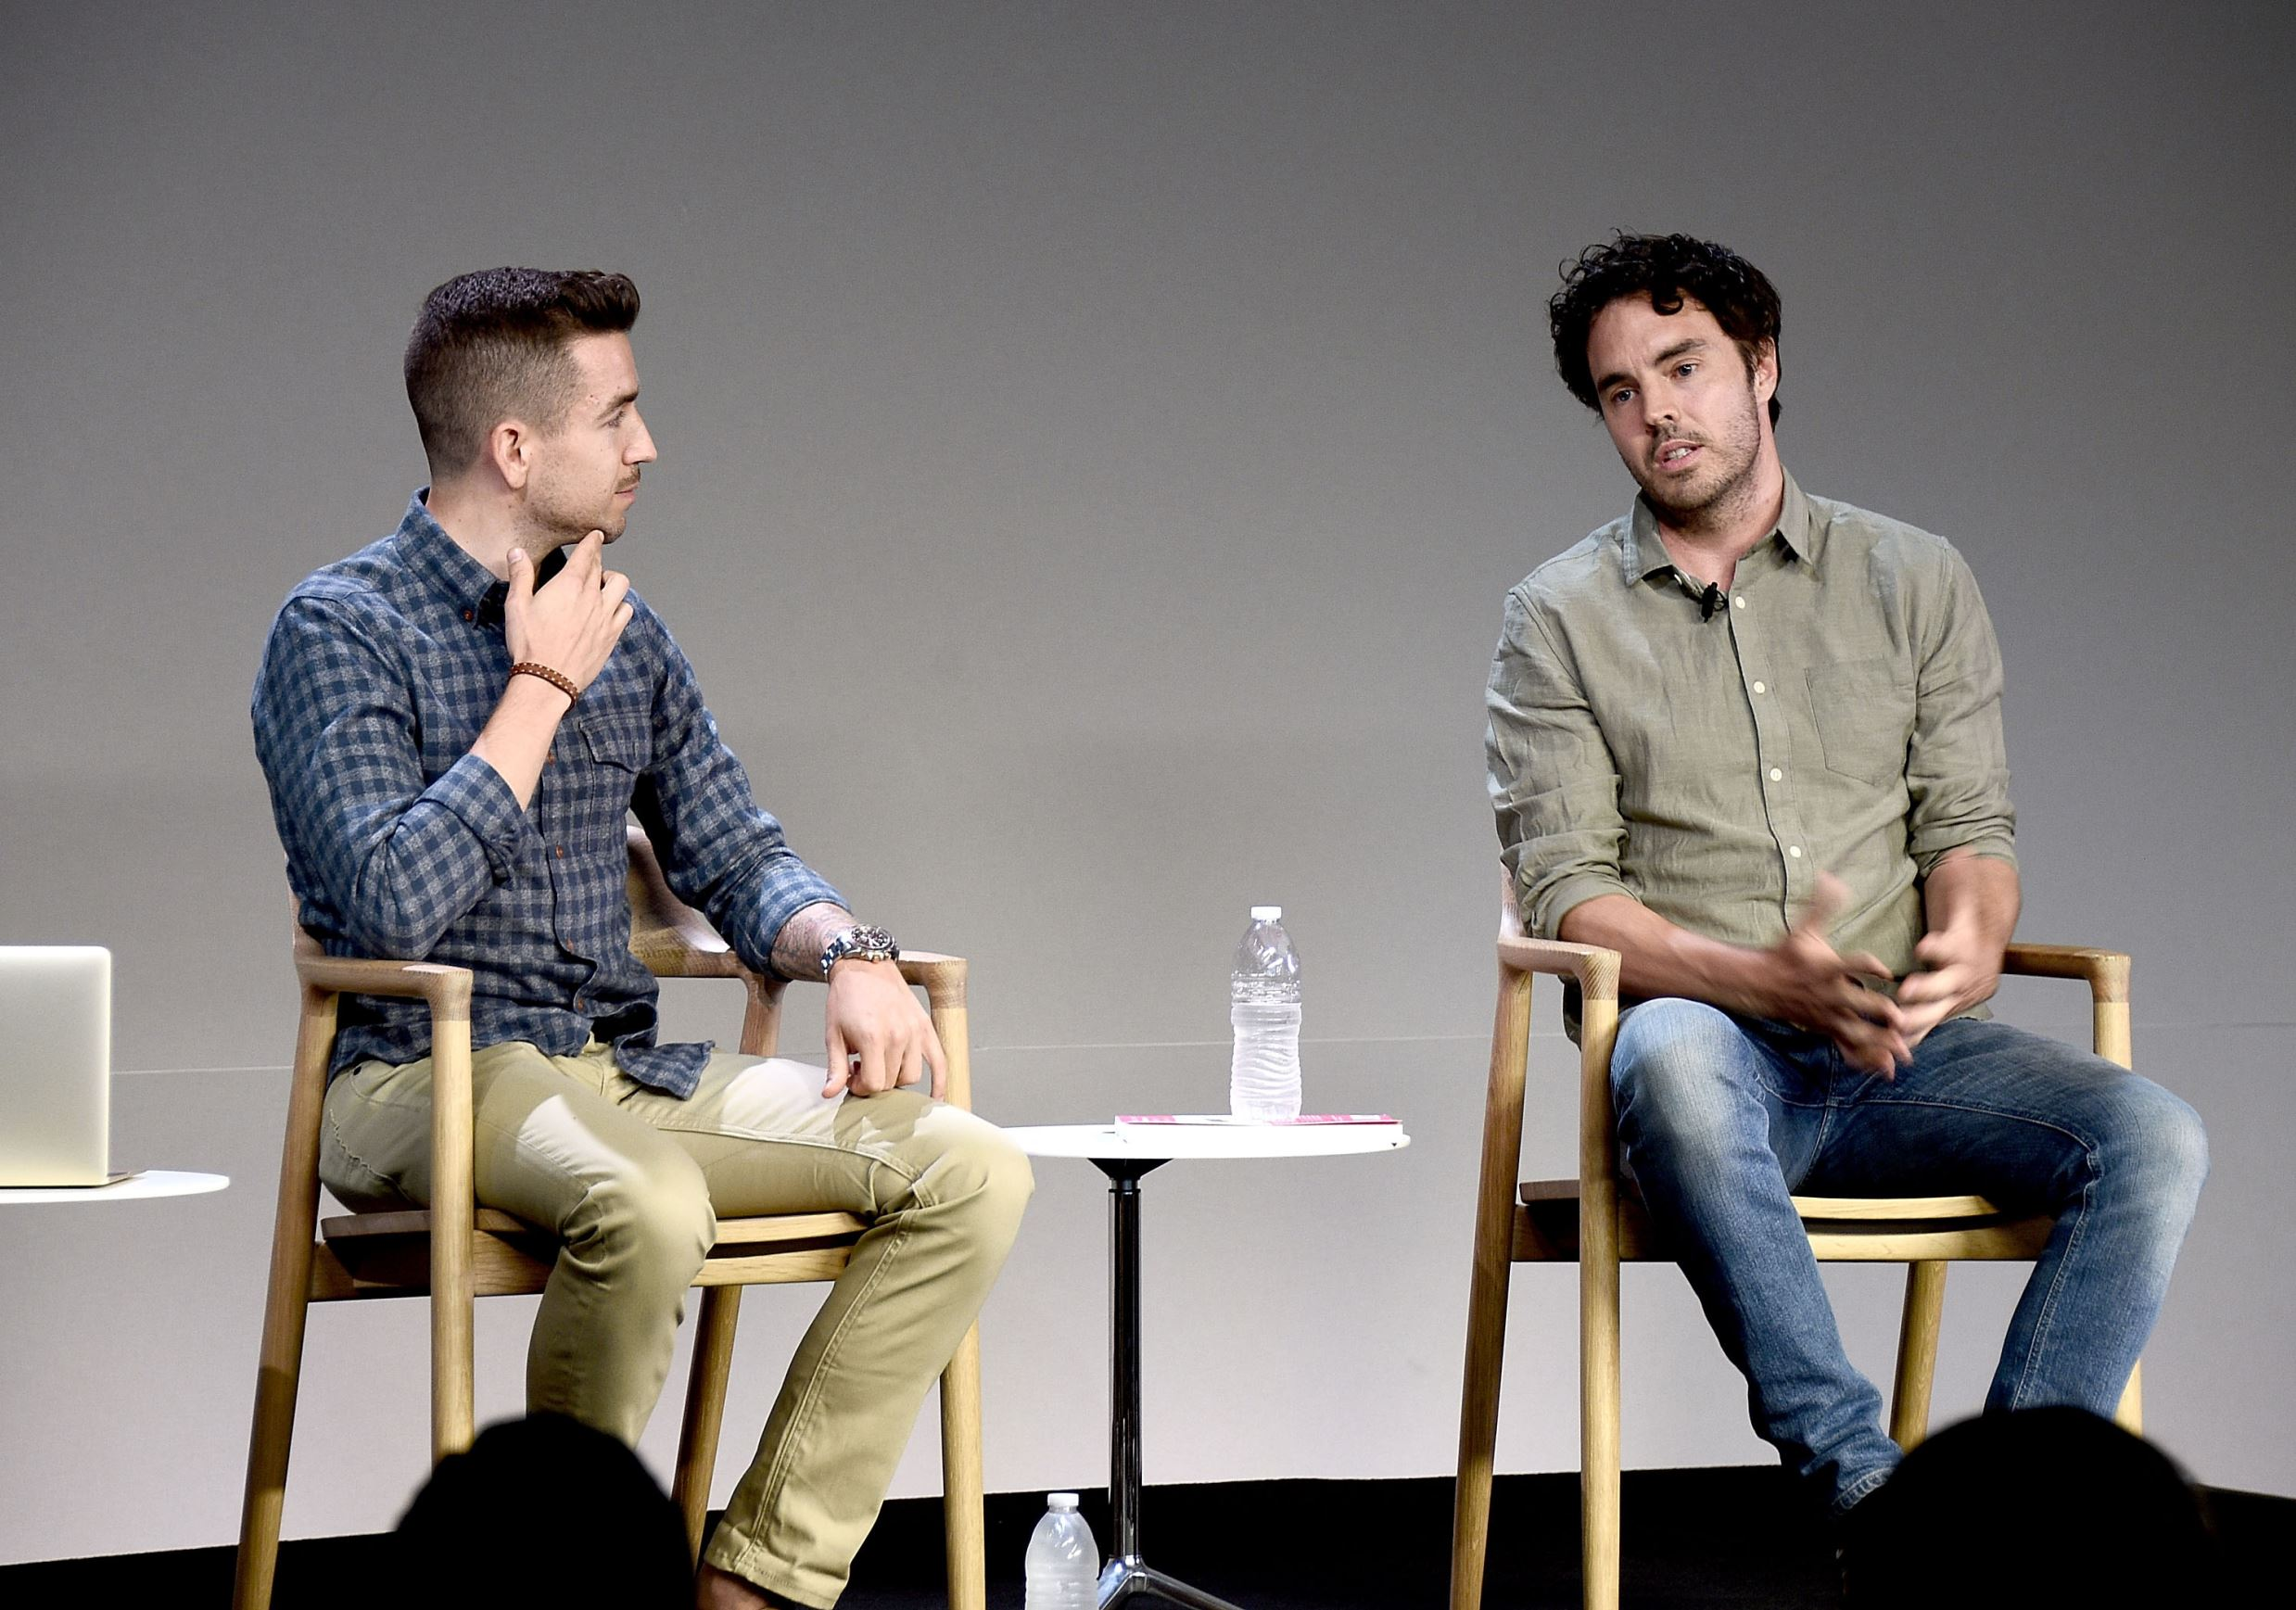 NEW YORK, NY - JULY 28: (L-R) Moderator Charles Thorp and filmmaker Damon Gameau attend Apple Store Soho Meet the Filmmaker: Damon Gameau, 'That Sugar Film' at Apple Store Soho on July 28, 2015 in New York City. (Photo by Andrew H. Walker/Getty Images)